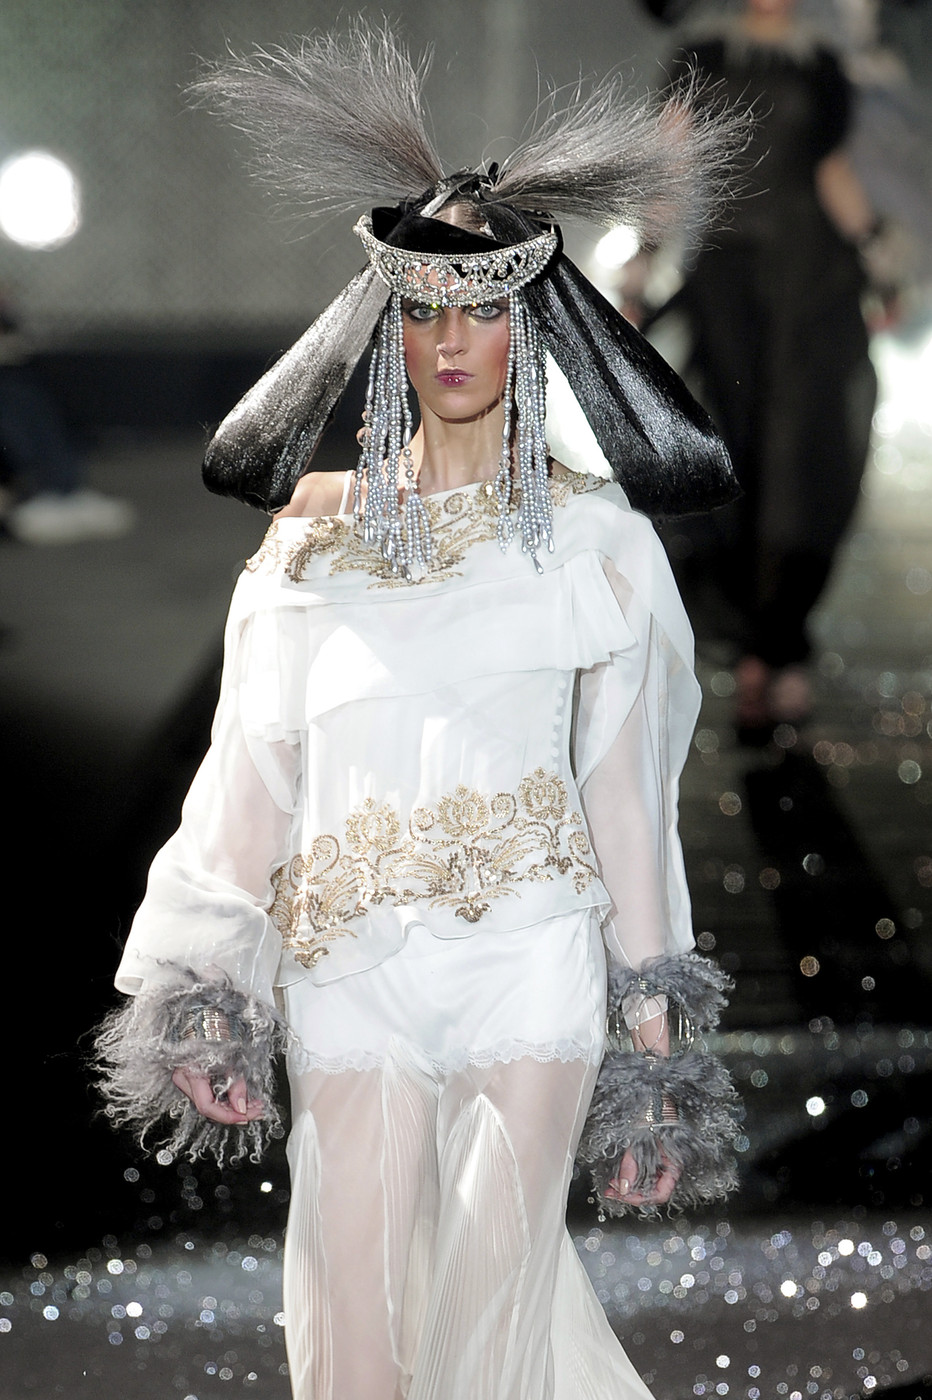 John Galliano at Paris Fashion Week Fall 2010